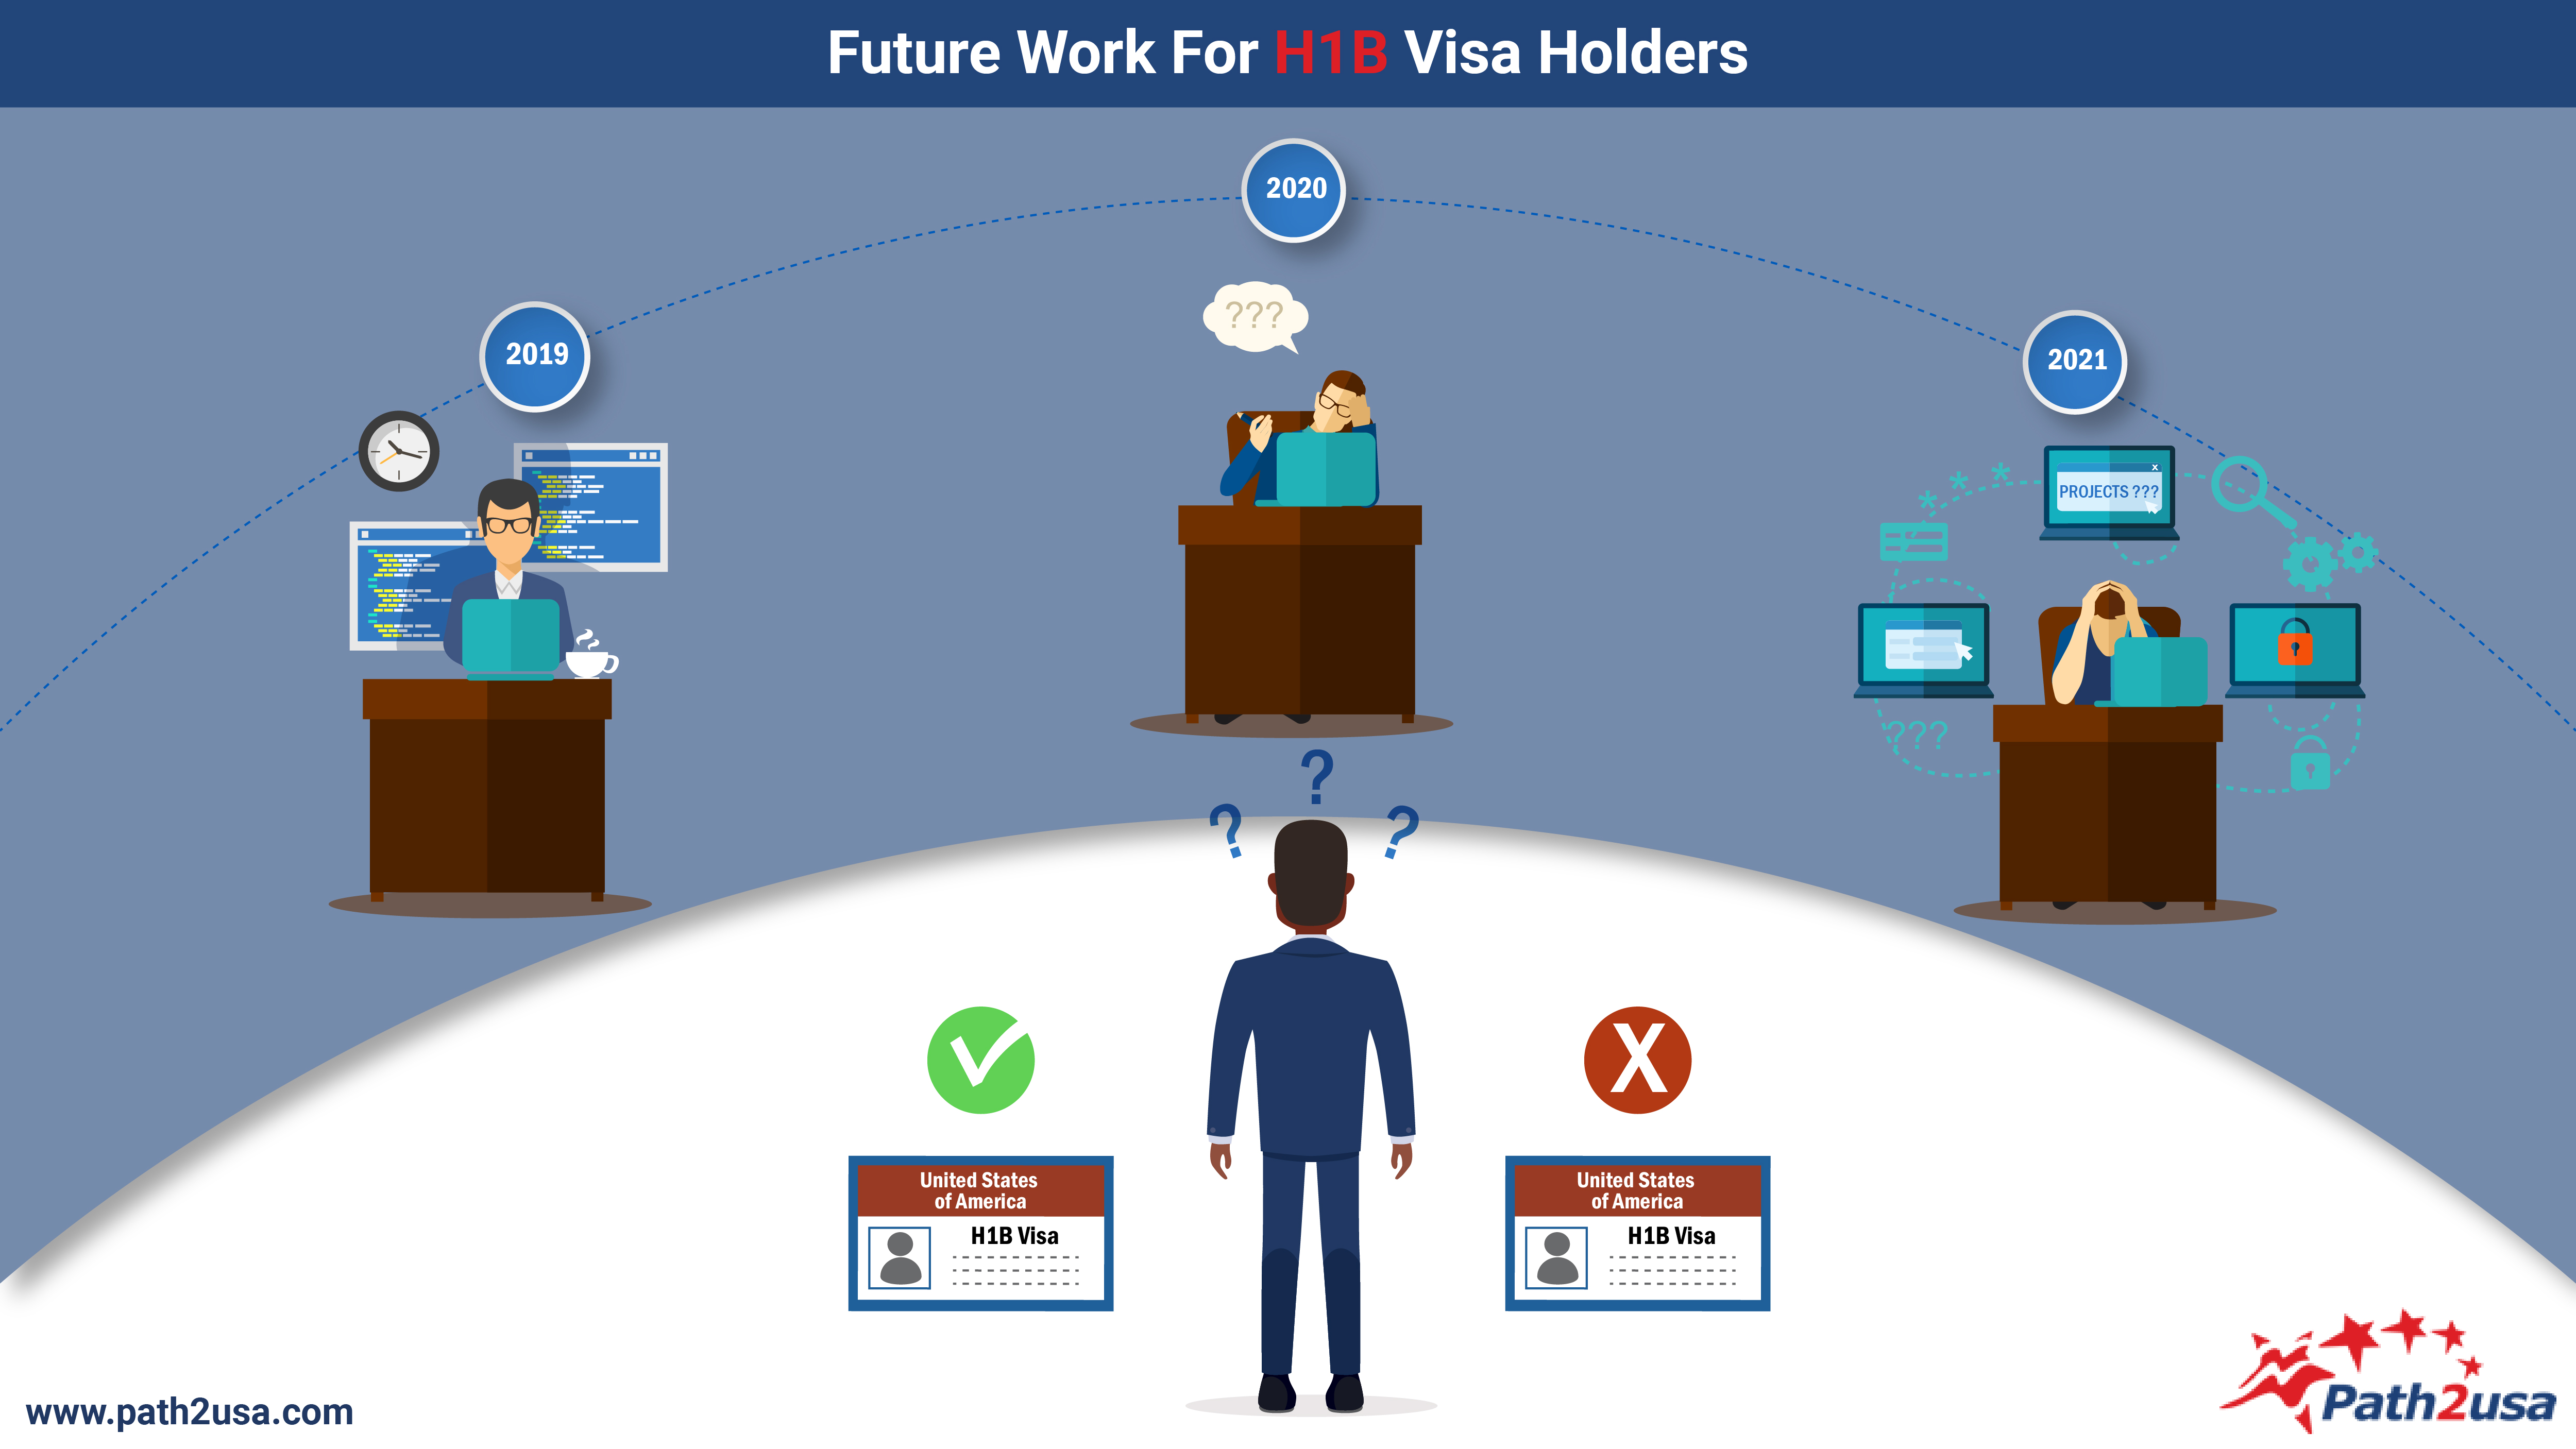 Future-work-for-H1B-visa-holders